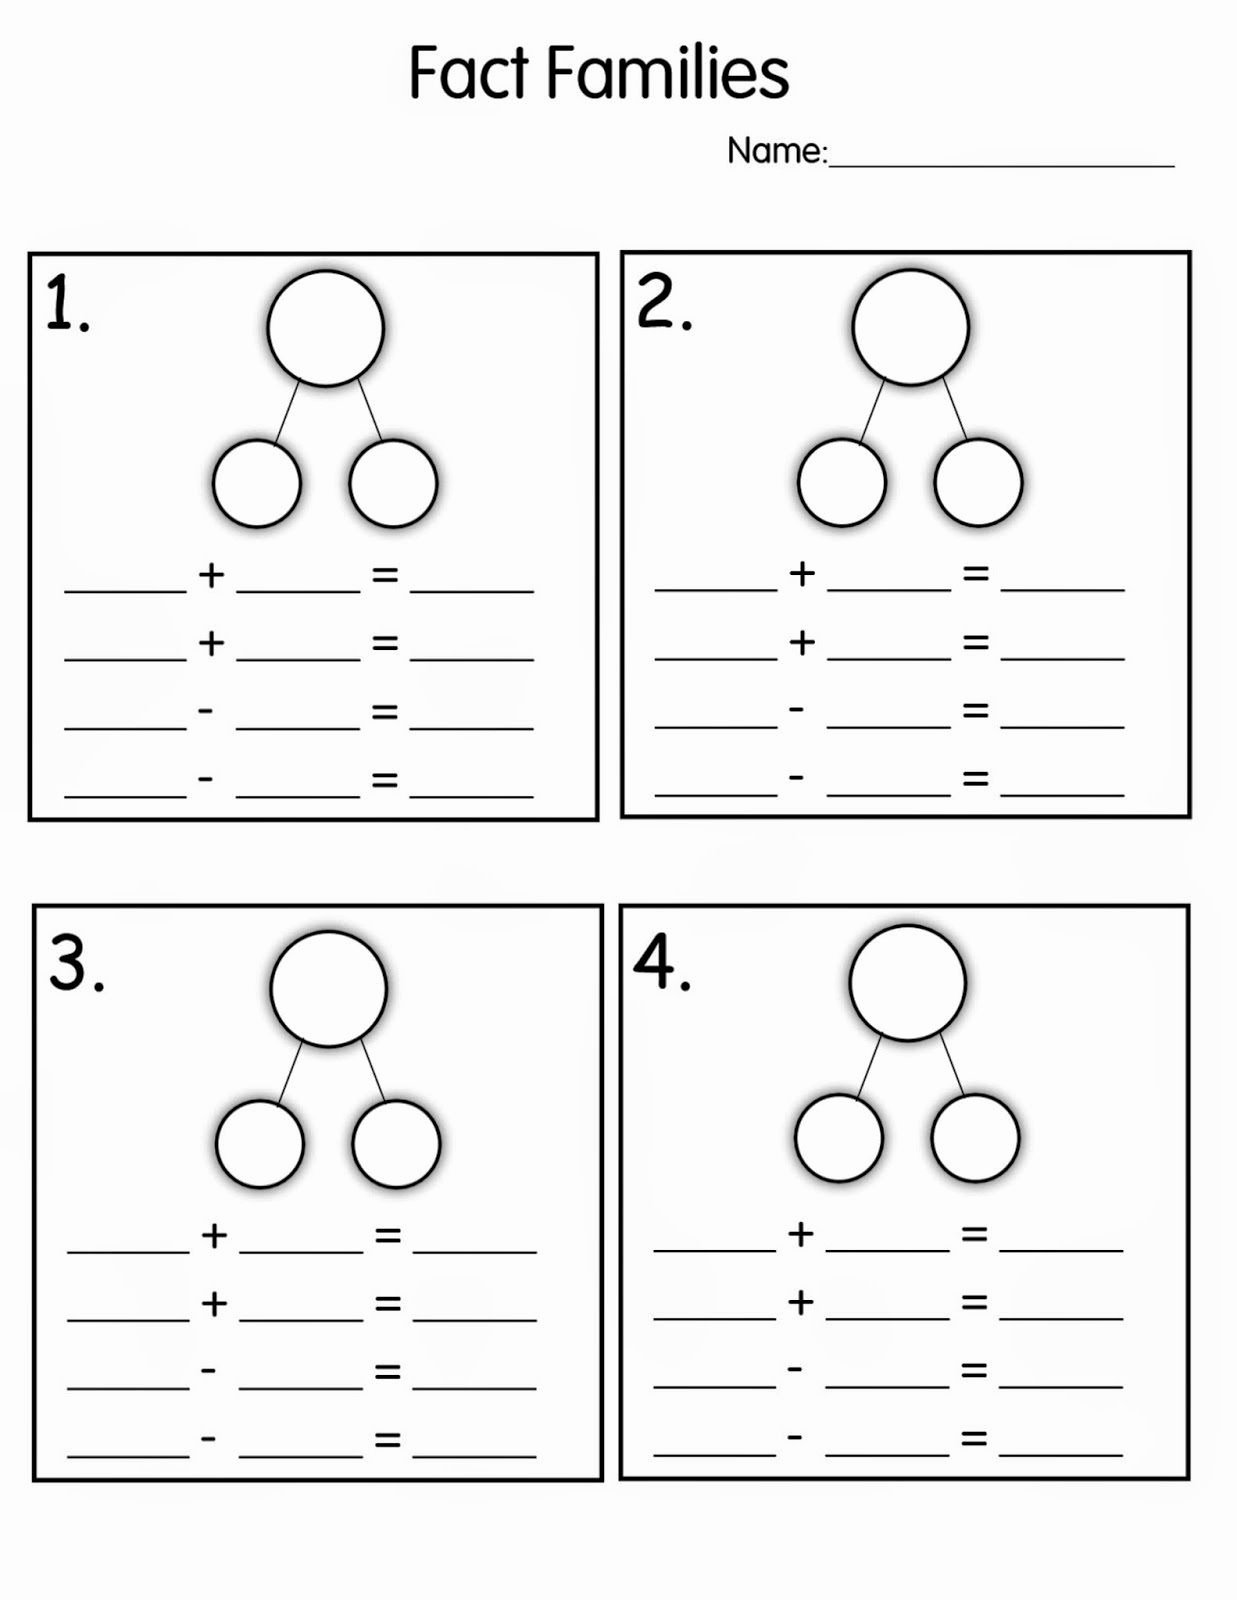 Fact Family Worksheets 1st Grade Fresh Number Family Worksheets for Kids